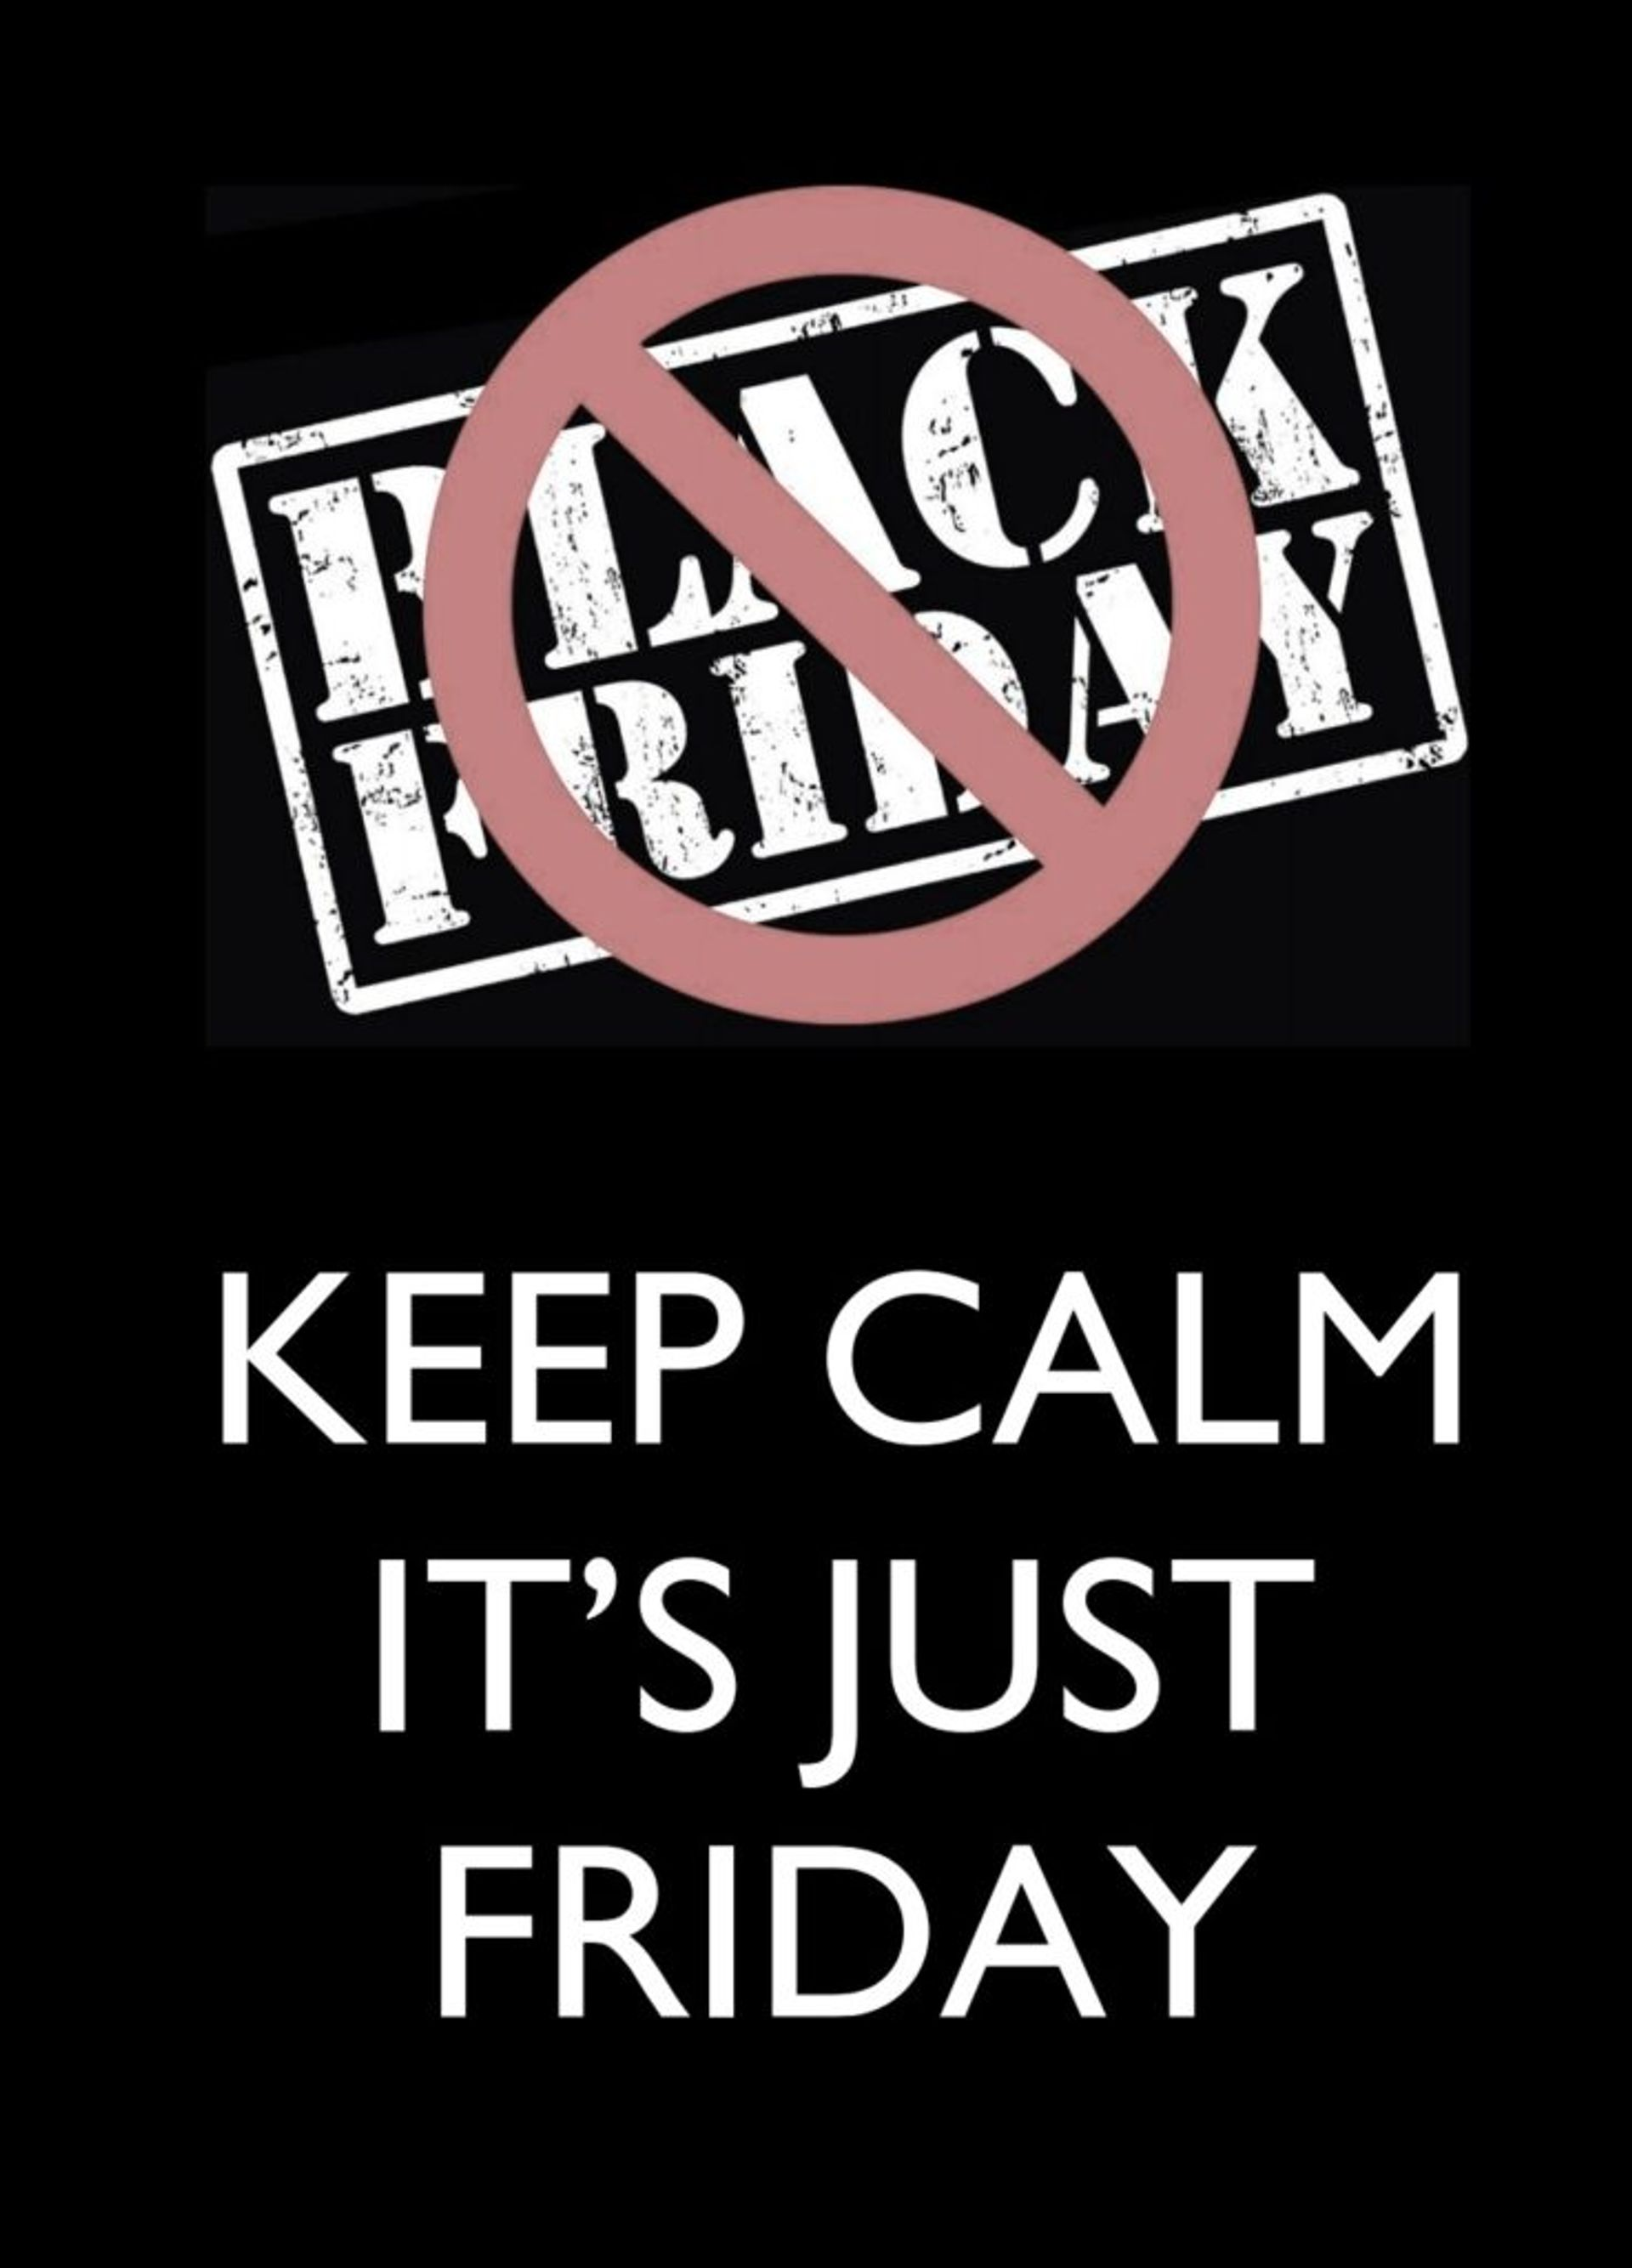 Anti-Black Friday logo with the text 'Keep Calm, it's just Friday' underneath.